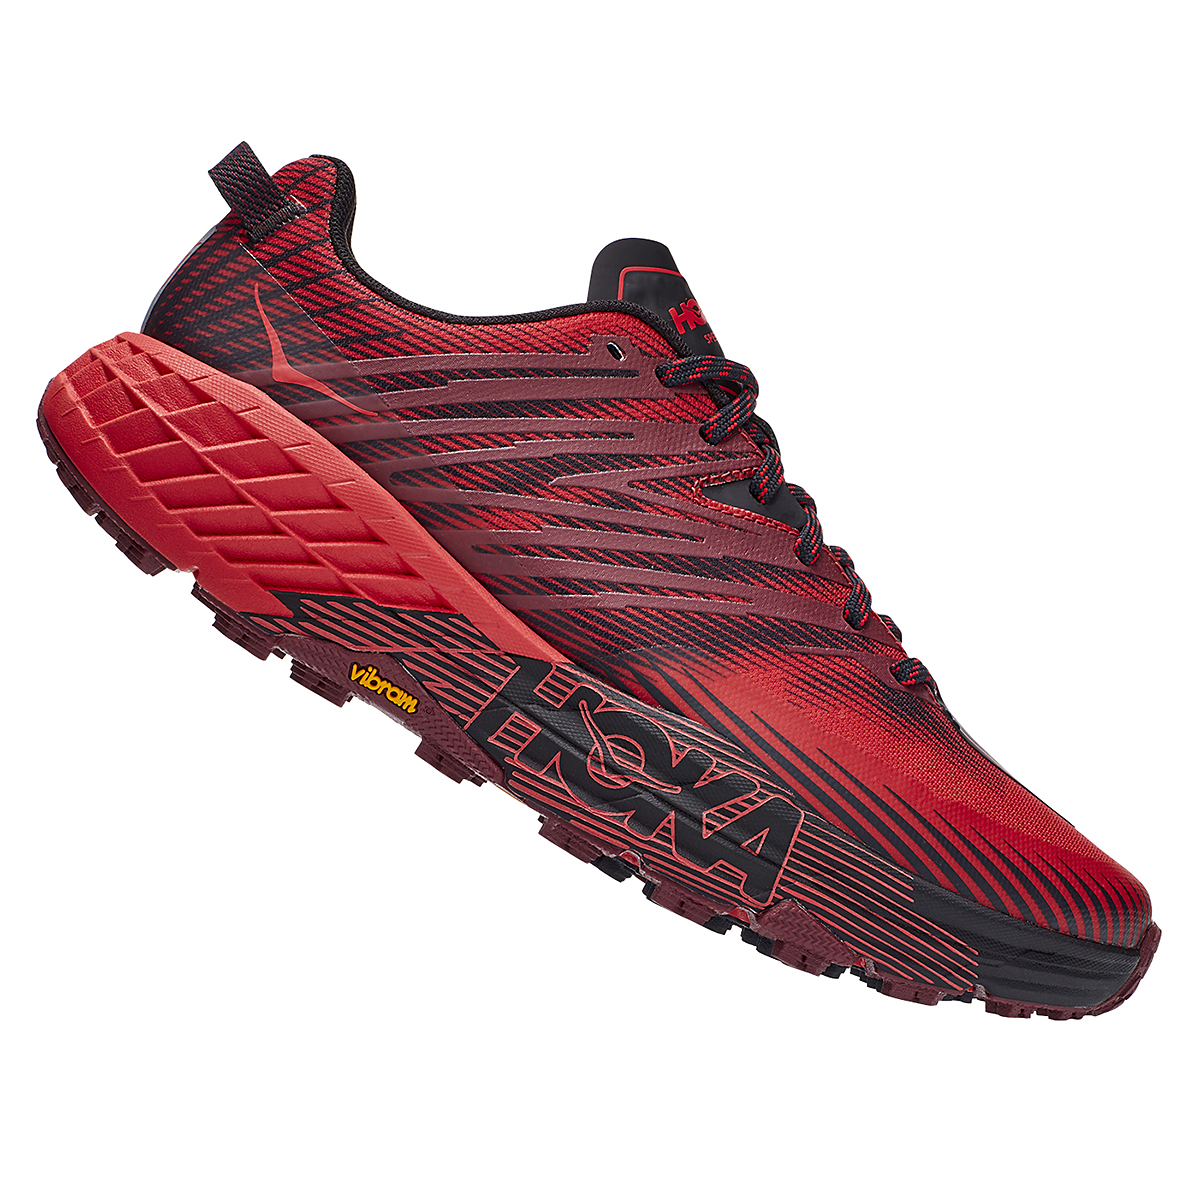 Men's Hoka One One Speedgoat 4 Trail Running Shoe - Color: Cordovan/High Risk Red - Size: 7 - Width: Regular, Cordovan/High Risk Red, large, image 3